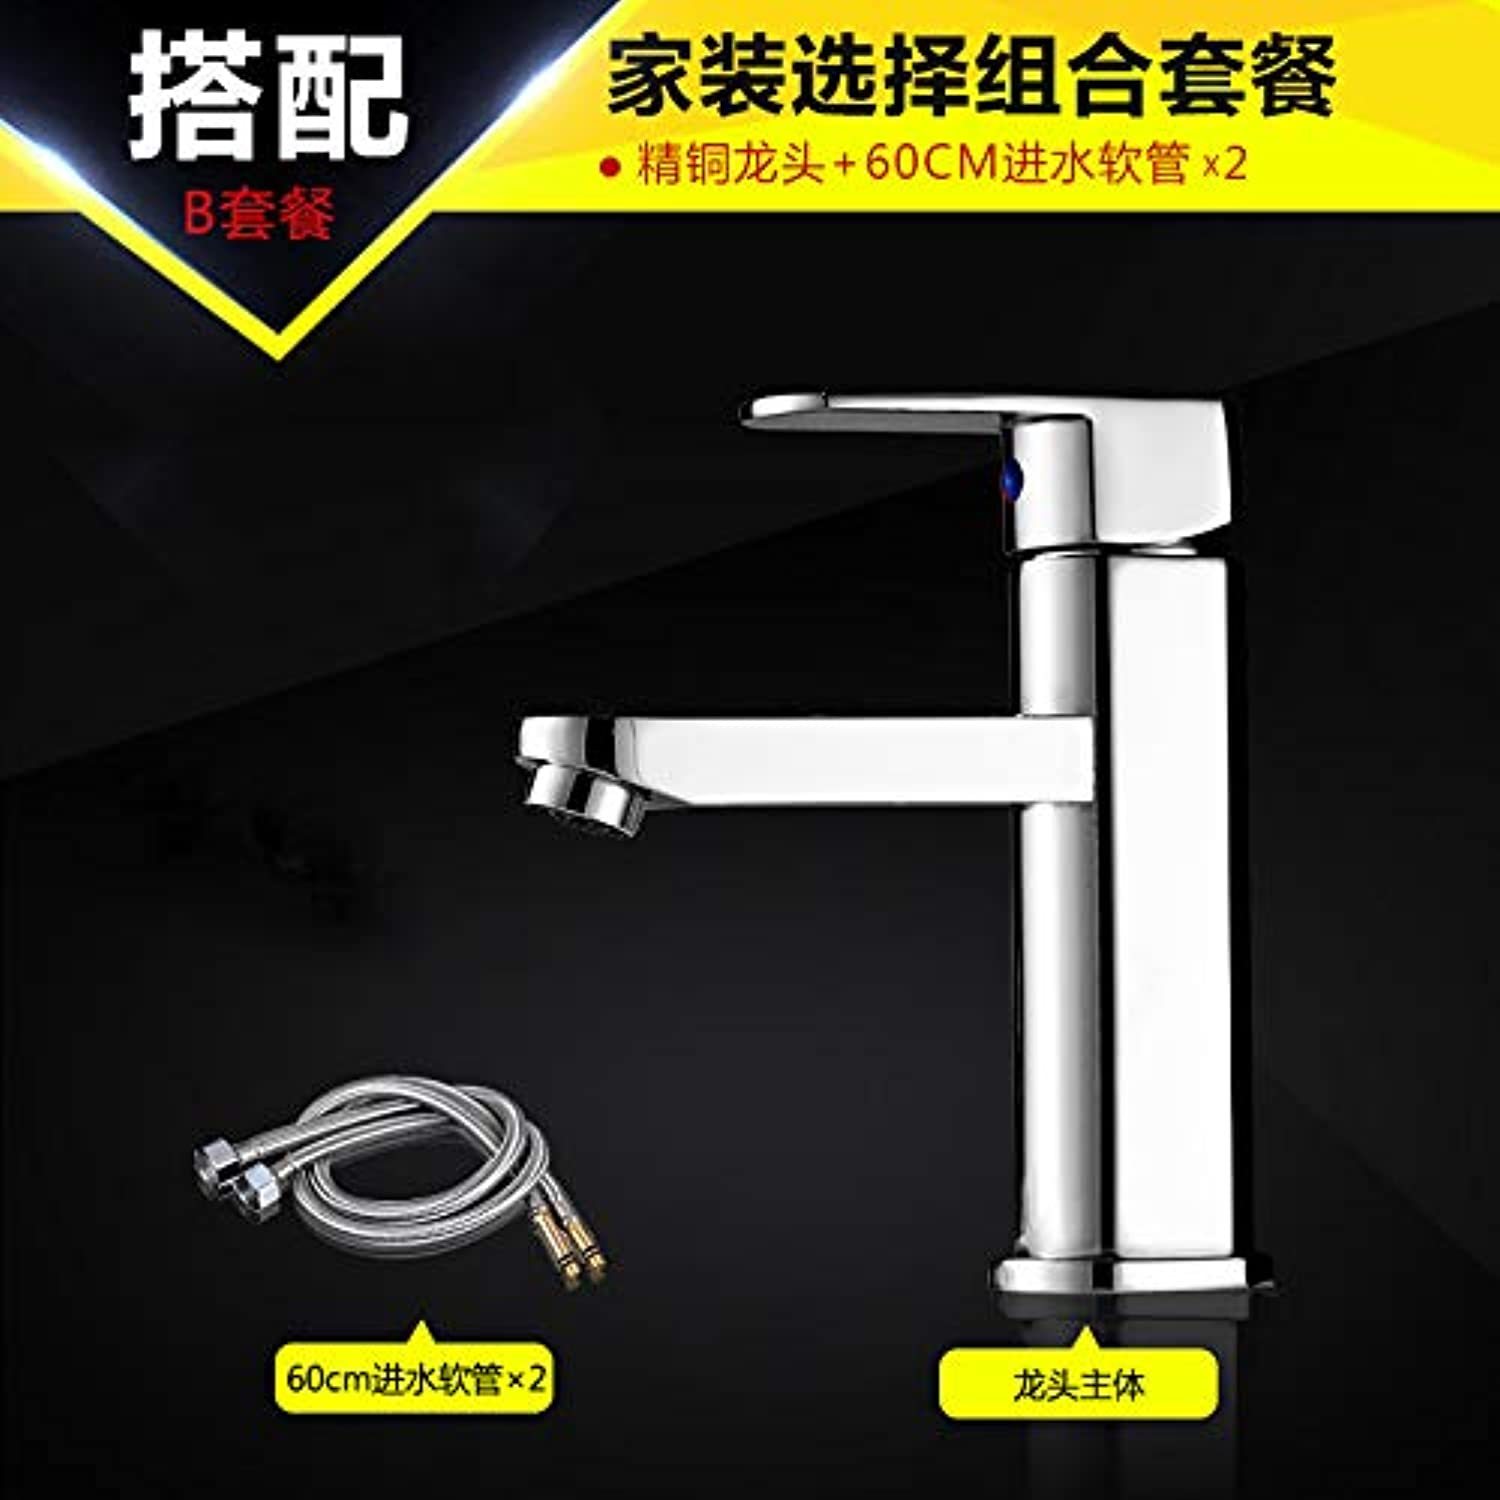 LHbox Basin Mixer Tap Bathroom Sink Faucet The Windsor faucet and cold water basin Washbasin Faucet single handle single hole basin mixer, the mixer body + Water Inlet Hose